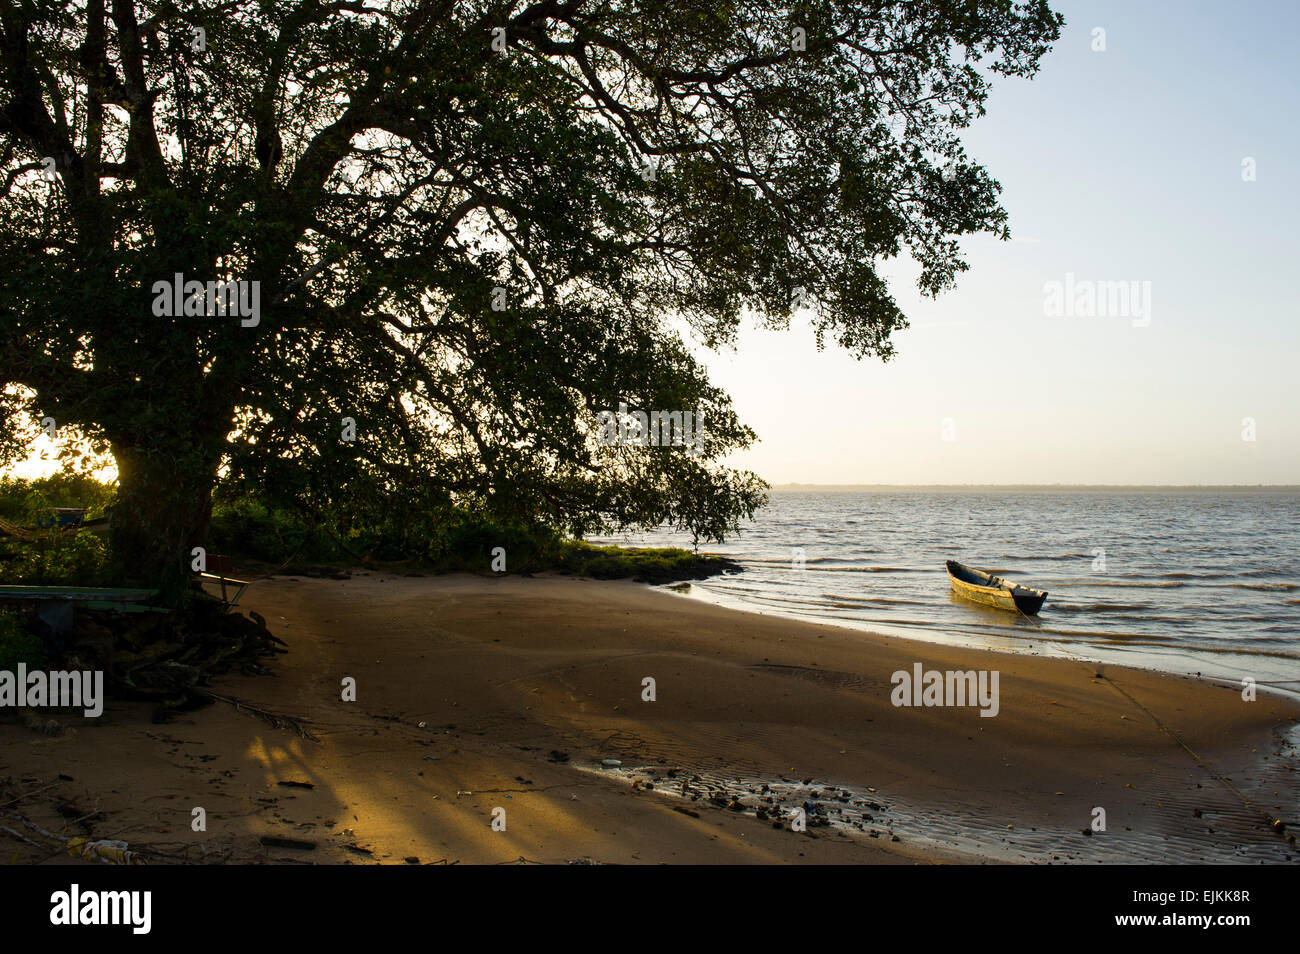 Beach, Galibi, Suriname - Stock Image